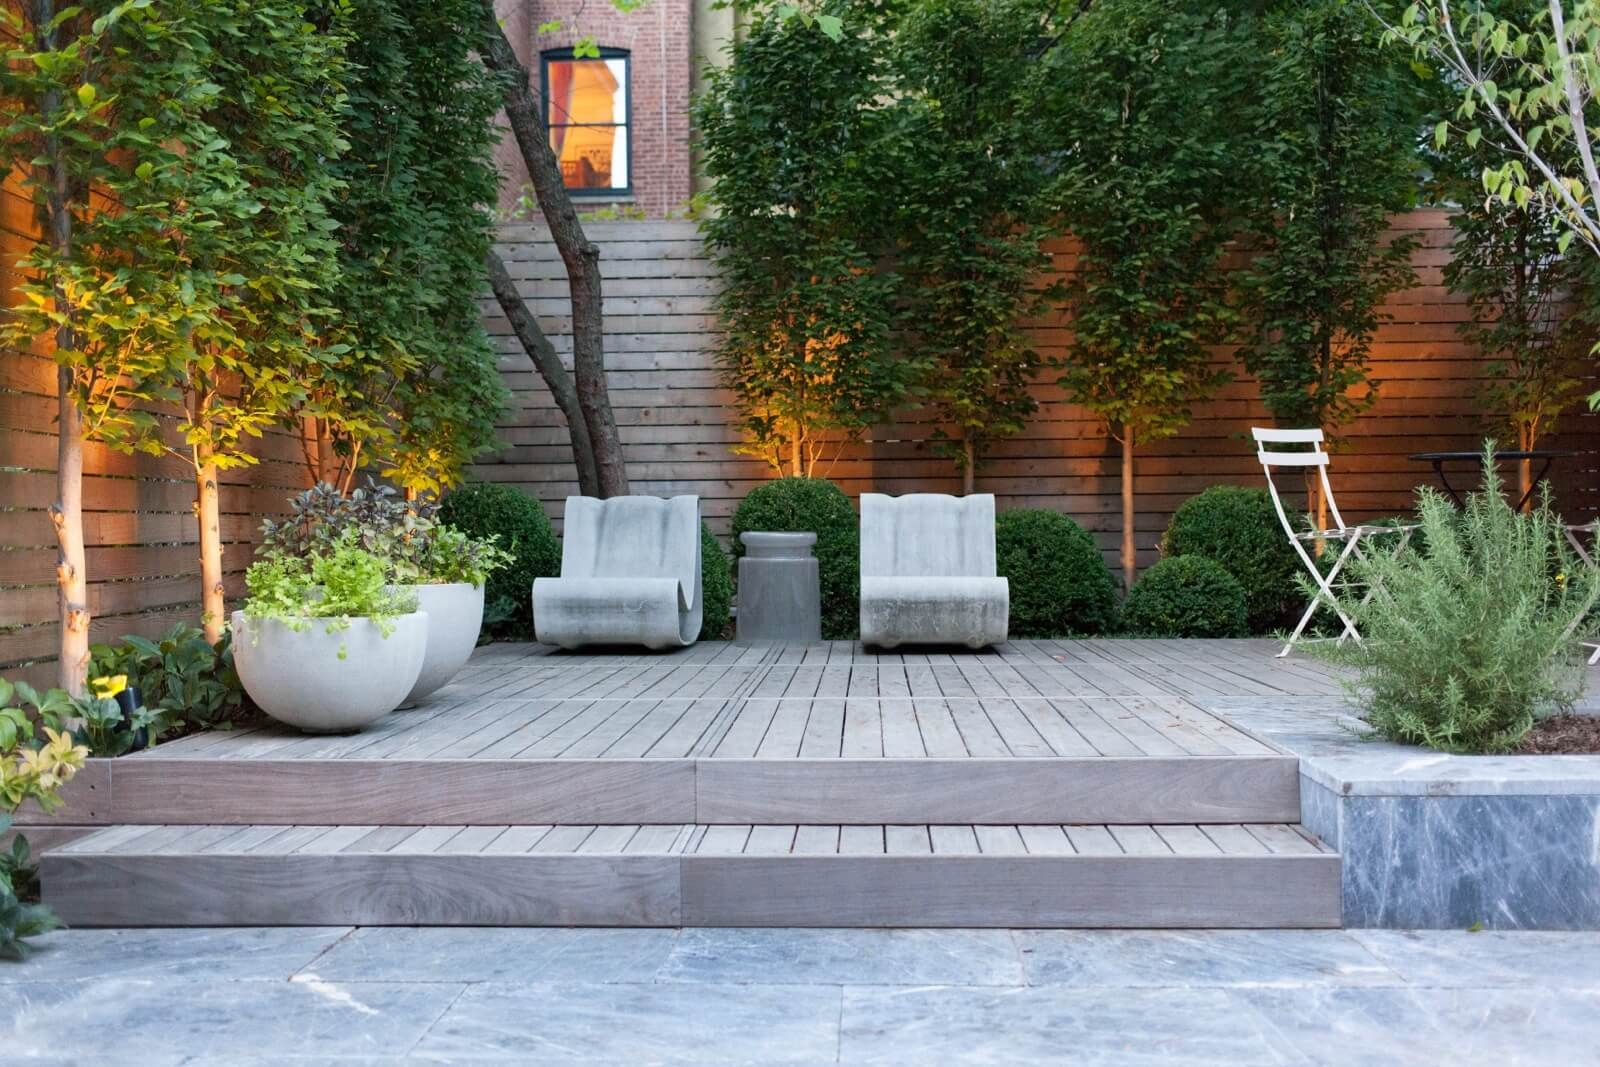 The Outsider Midwood Garden Charms With Subtle Plantings And